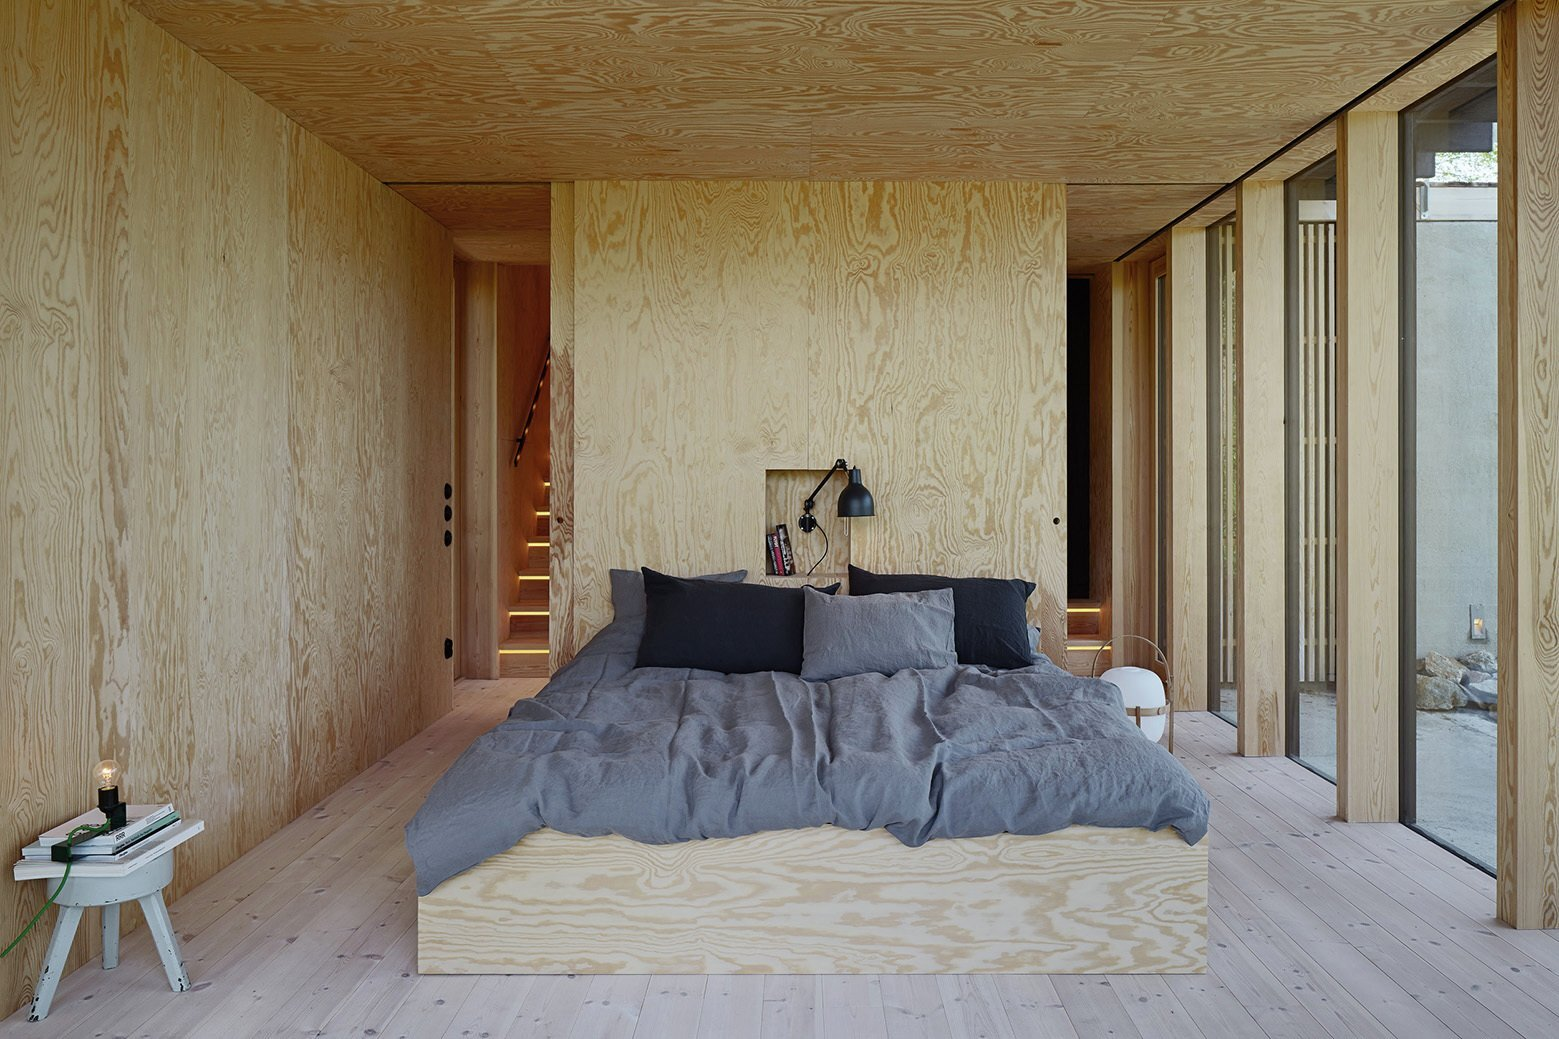 Aspvik House - Small House - Andreas Martin Löf Arkitekter - Sweden - Bedroom - Humble Homes